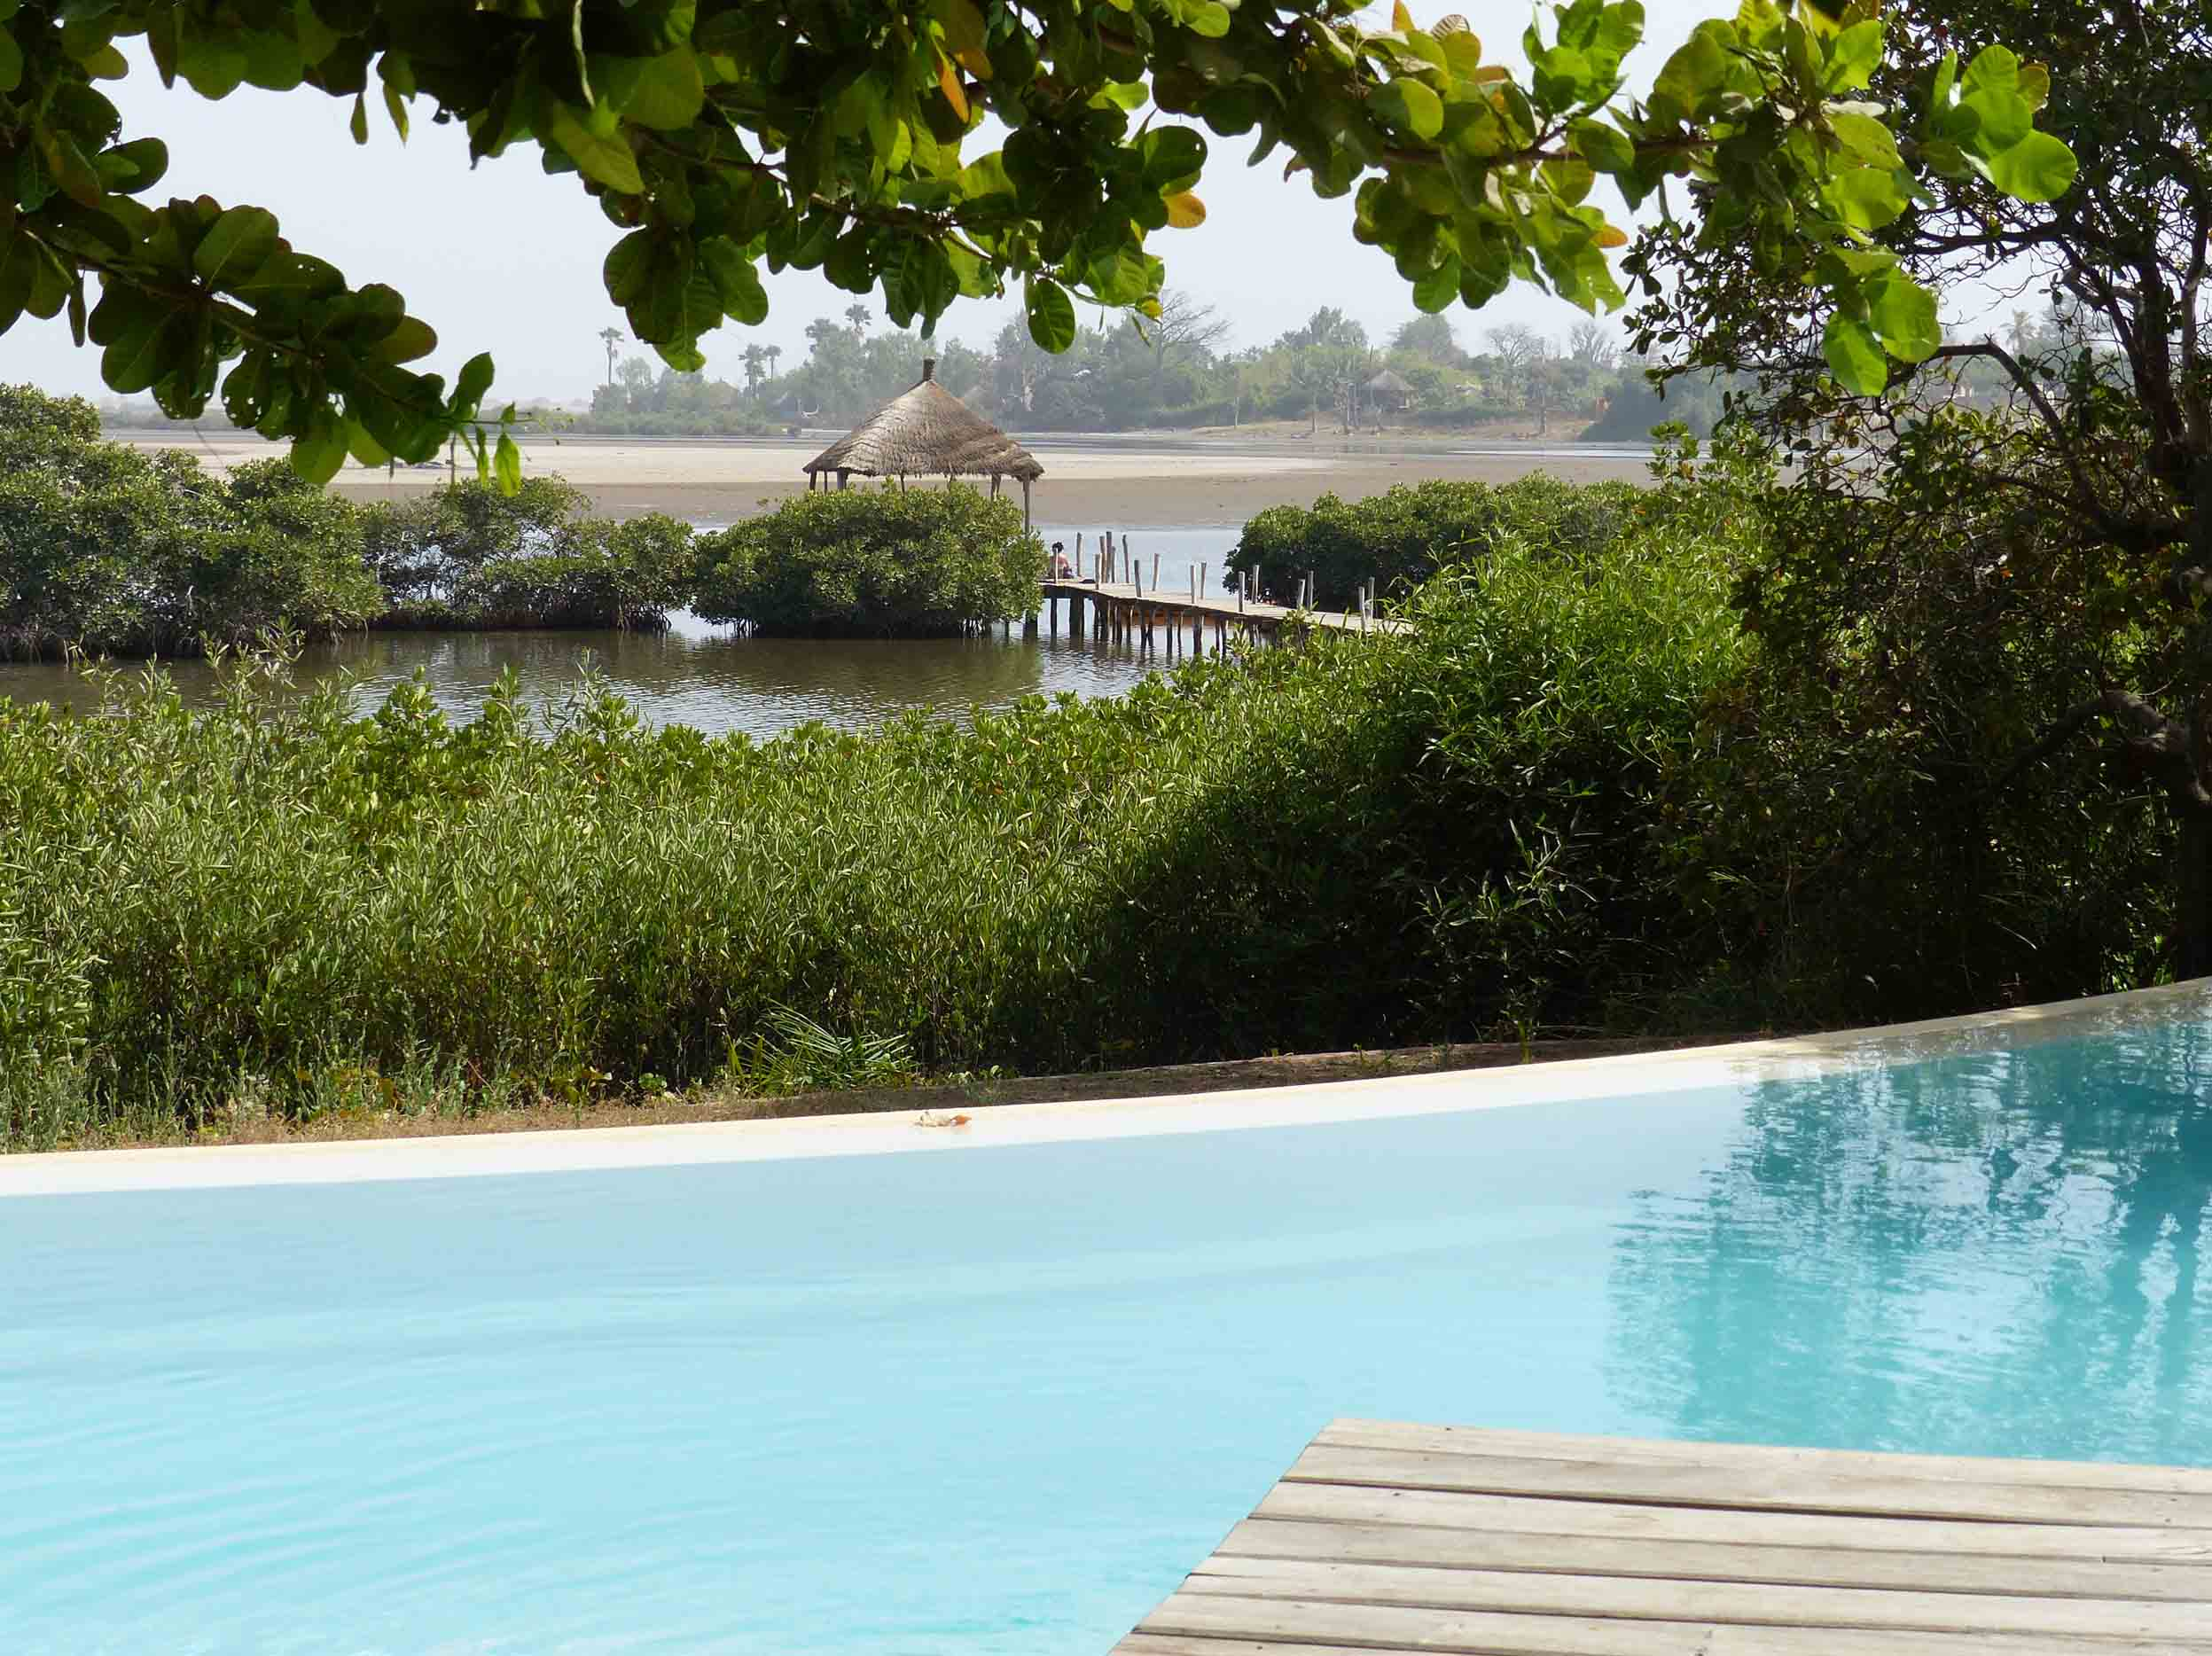 Small swimming pool with mangroves beyond